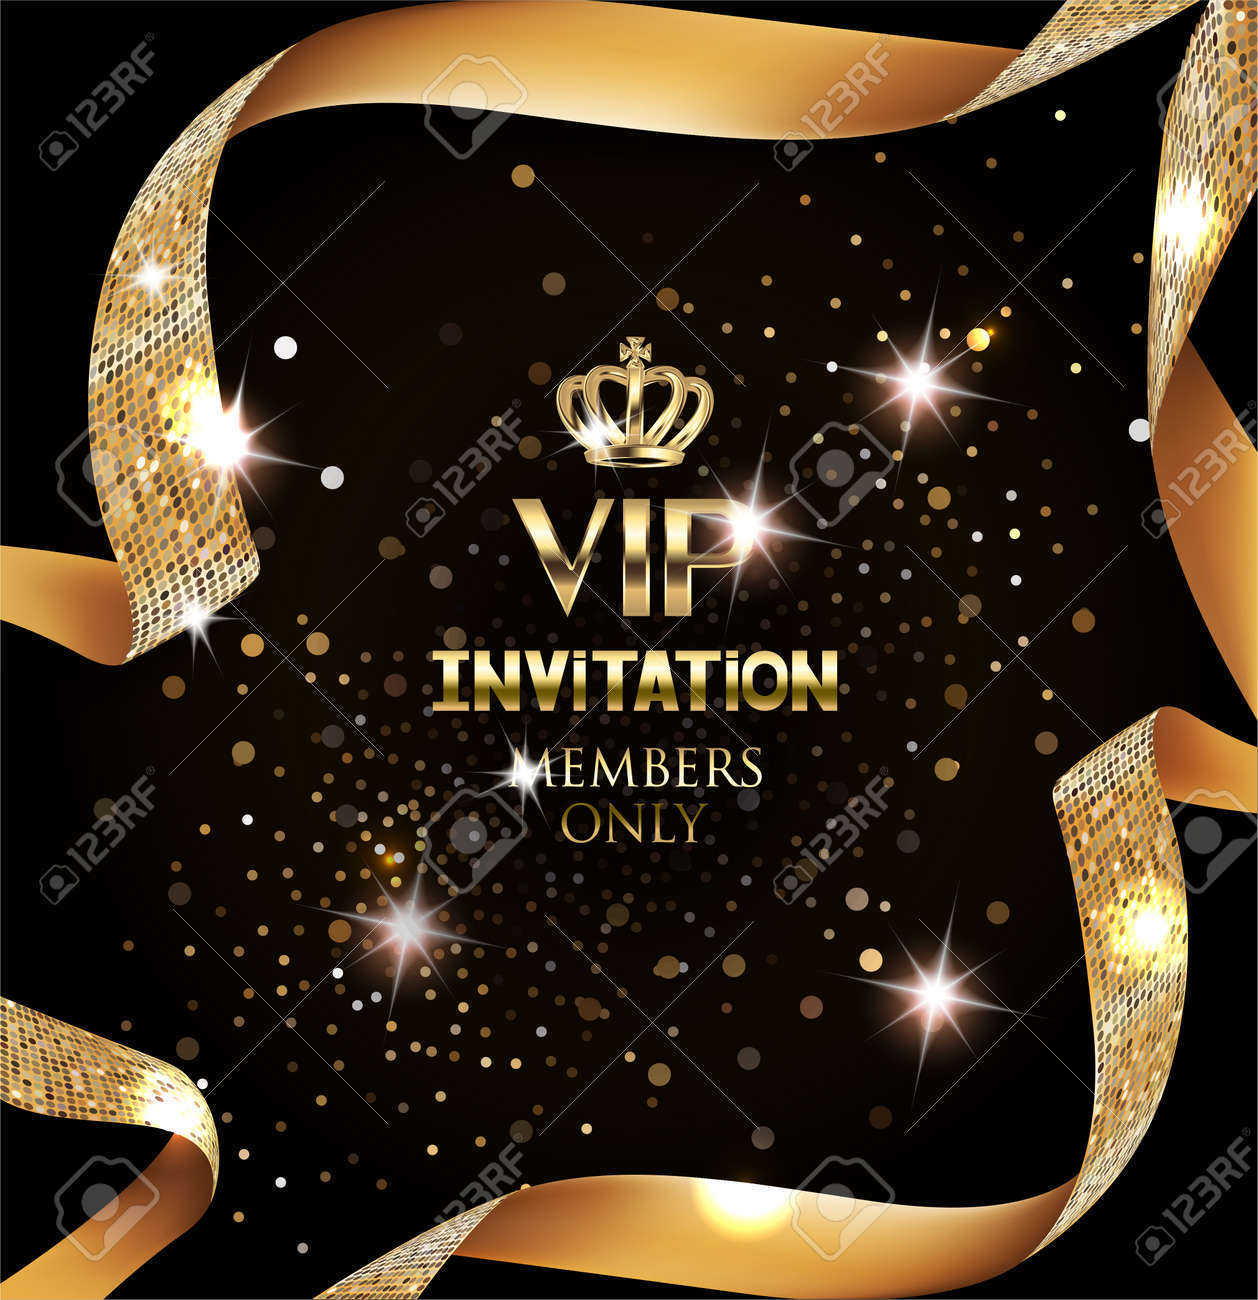 Elegant vip invitation card with silk textured curled gold ribbon elegant vip invitation card with silk textured curled gold ribbon stock vector 66680326 stopboris Image collections